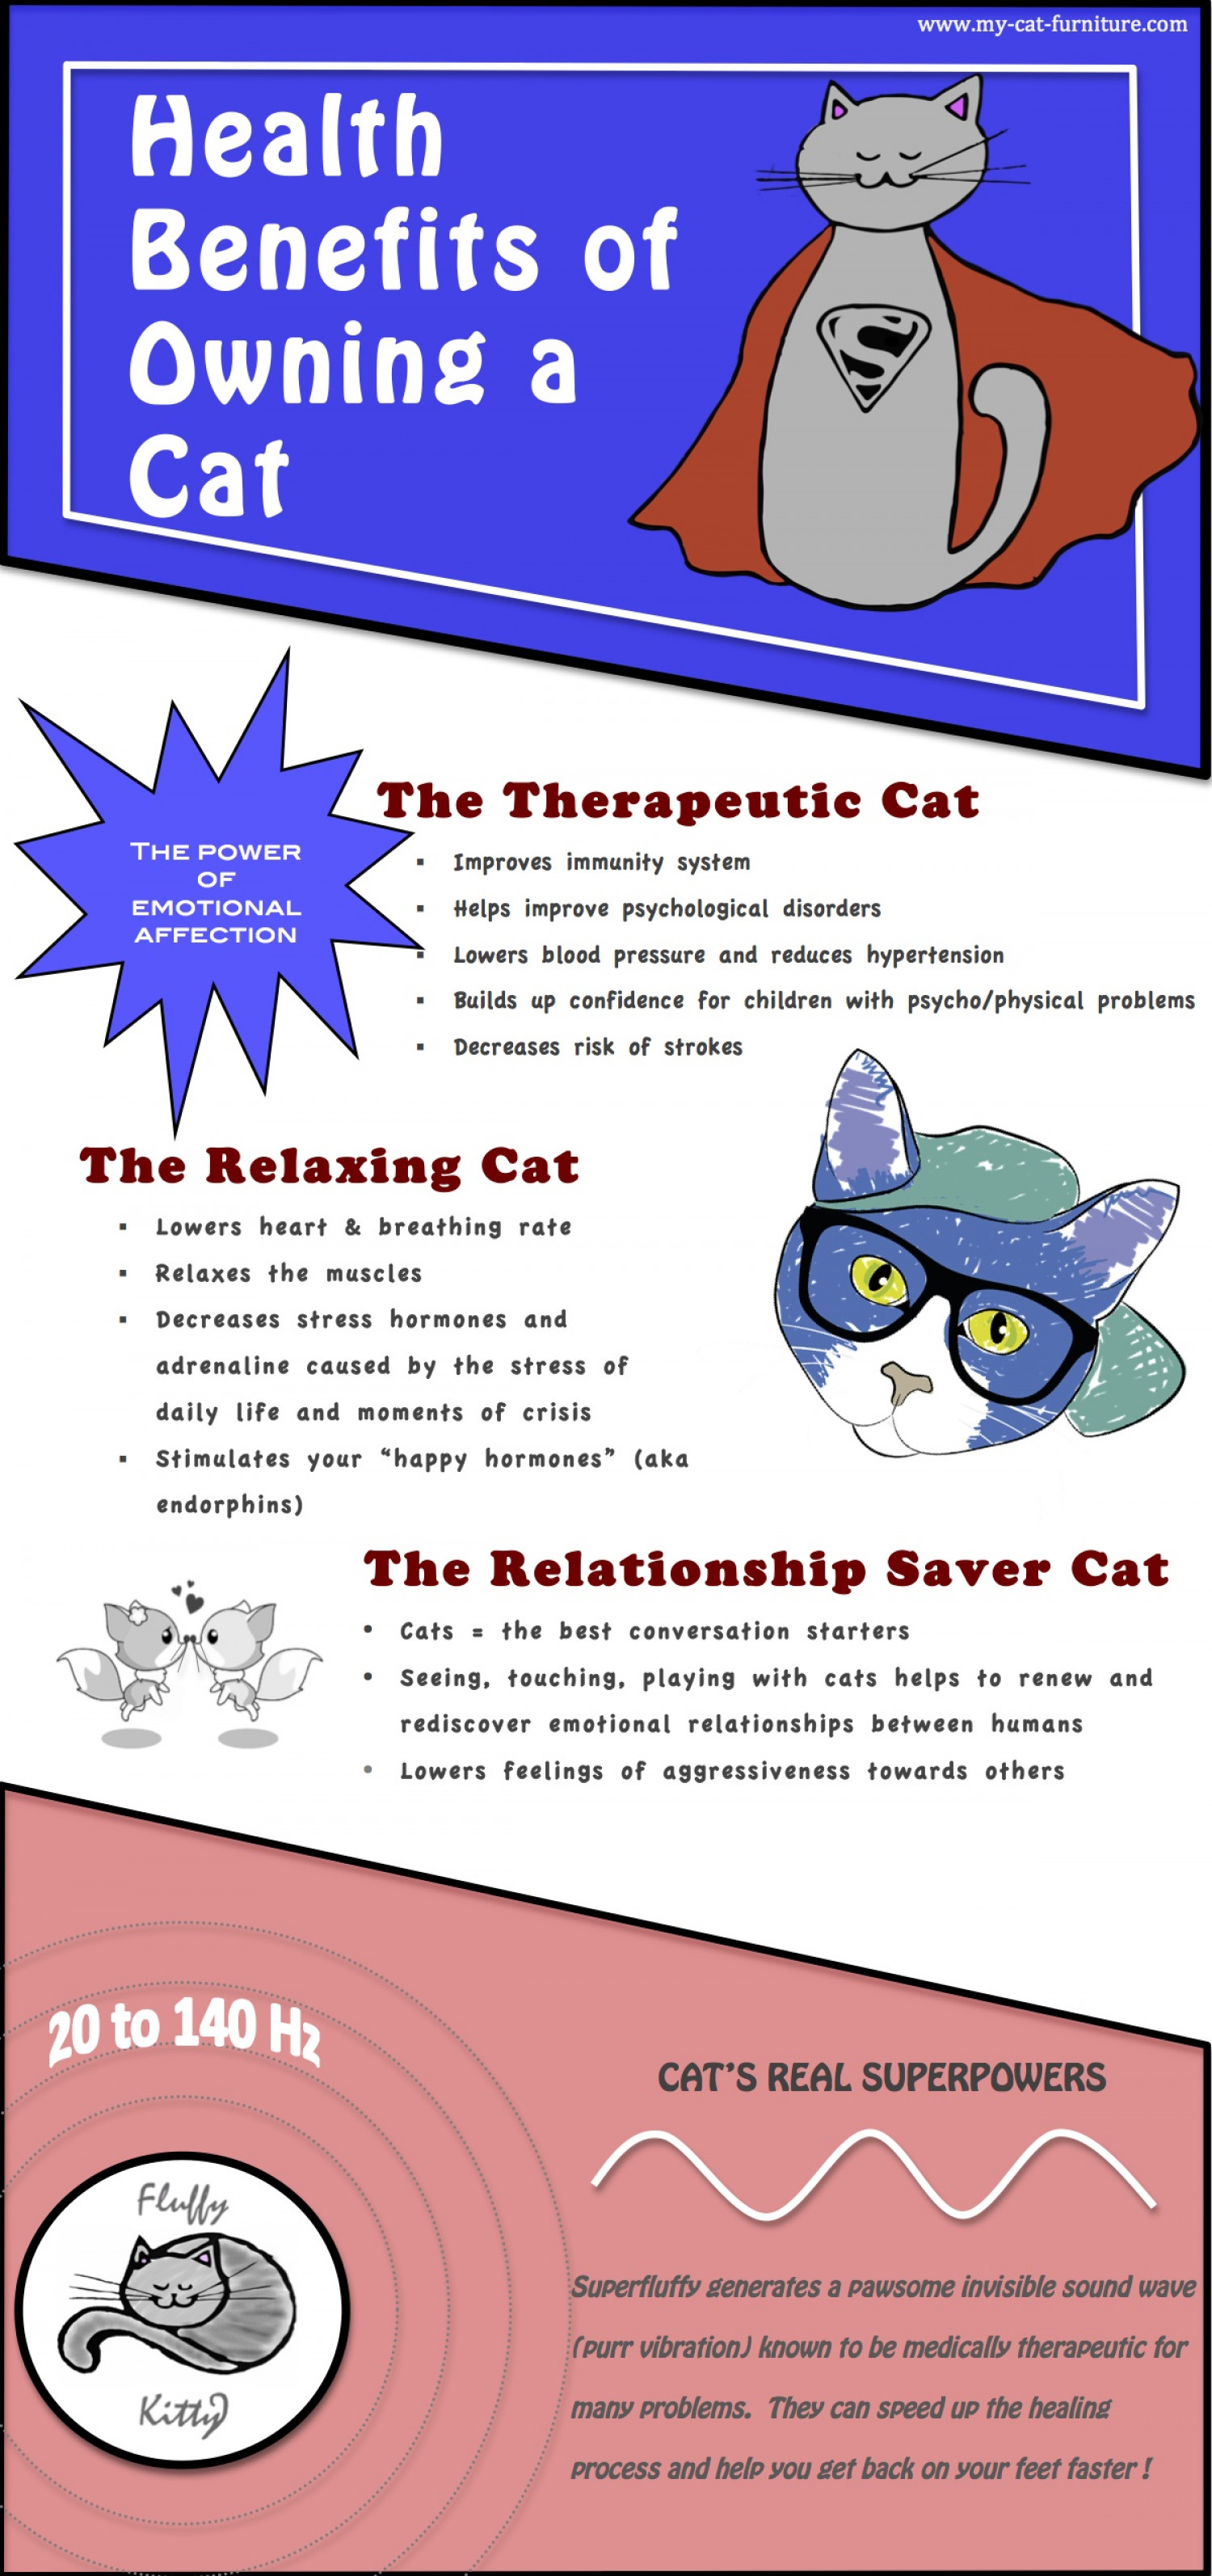 Health benefits of owning a cat Infographic